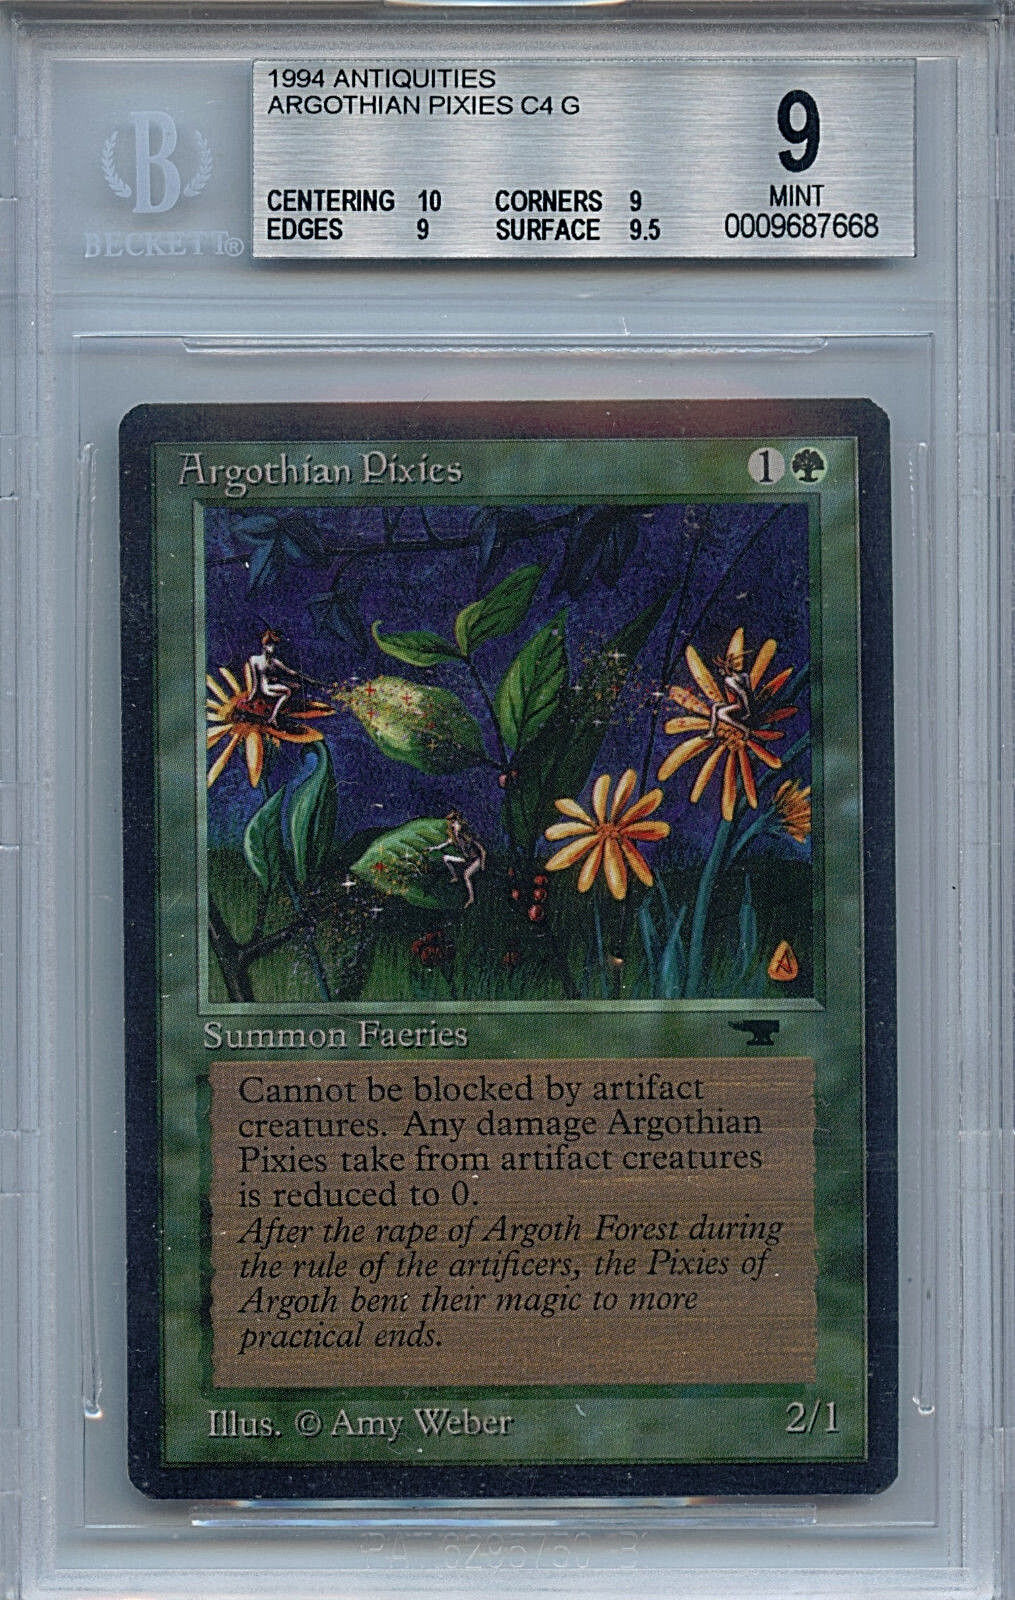 MTG Antiquities Argothian Pixies BGS 9.0 (9) Mint Magic the Gathering WOTC 7668